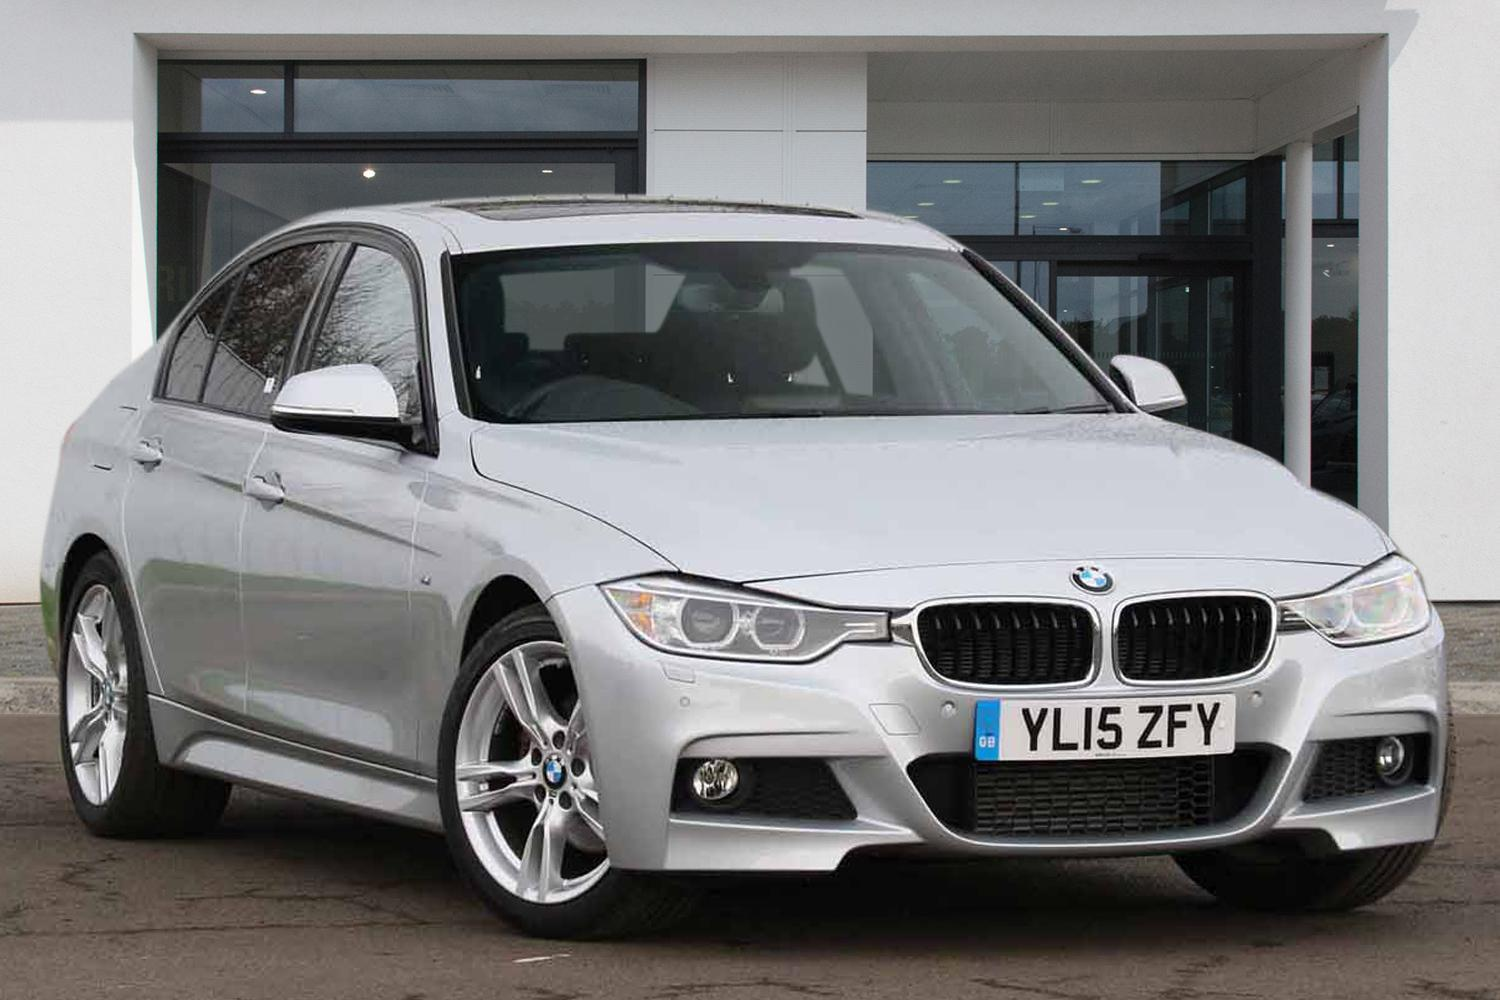 BMW 3 Series Saloon YL15ZFY - Image 5